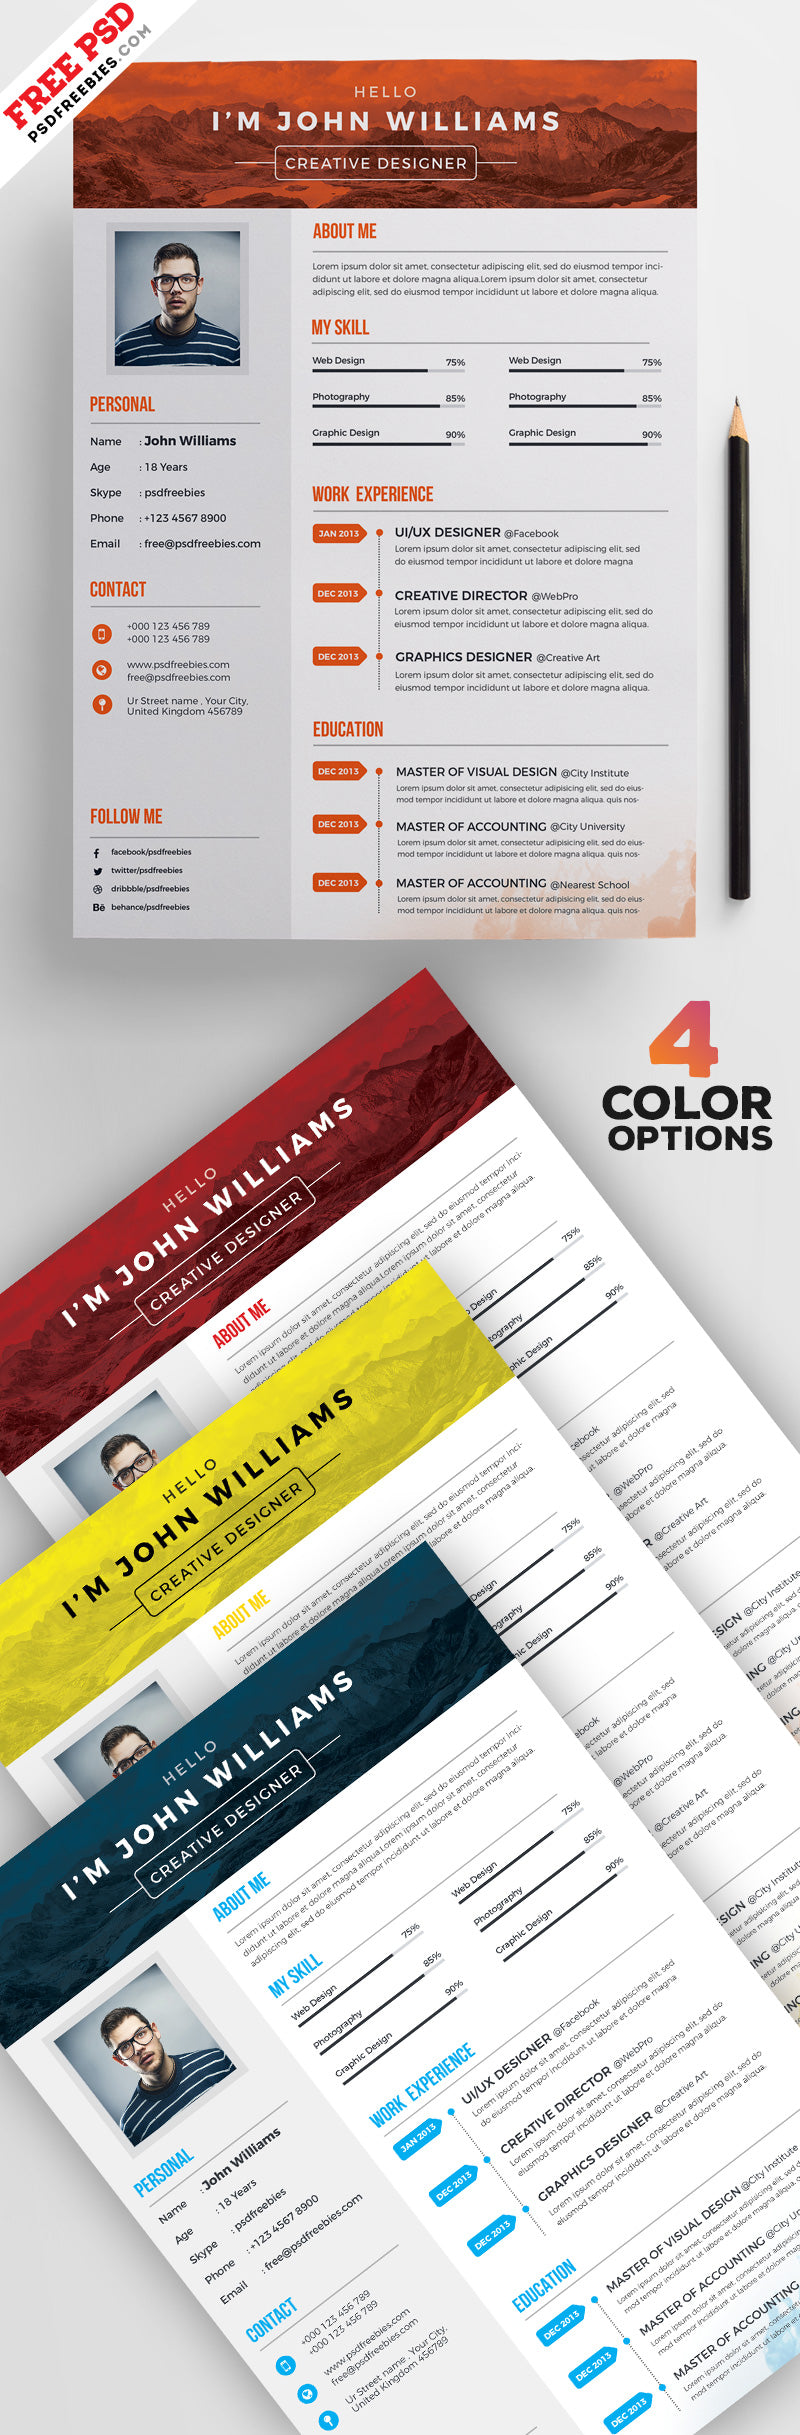 free 4 creative cv resume design templates set in photoshop psd